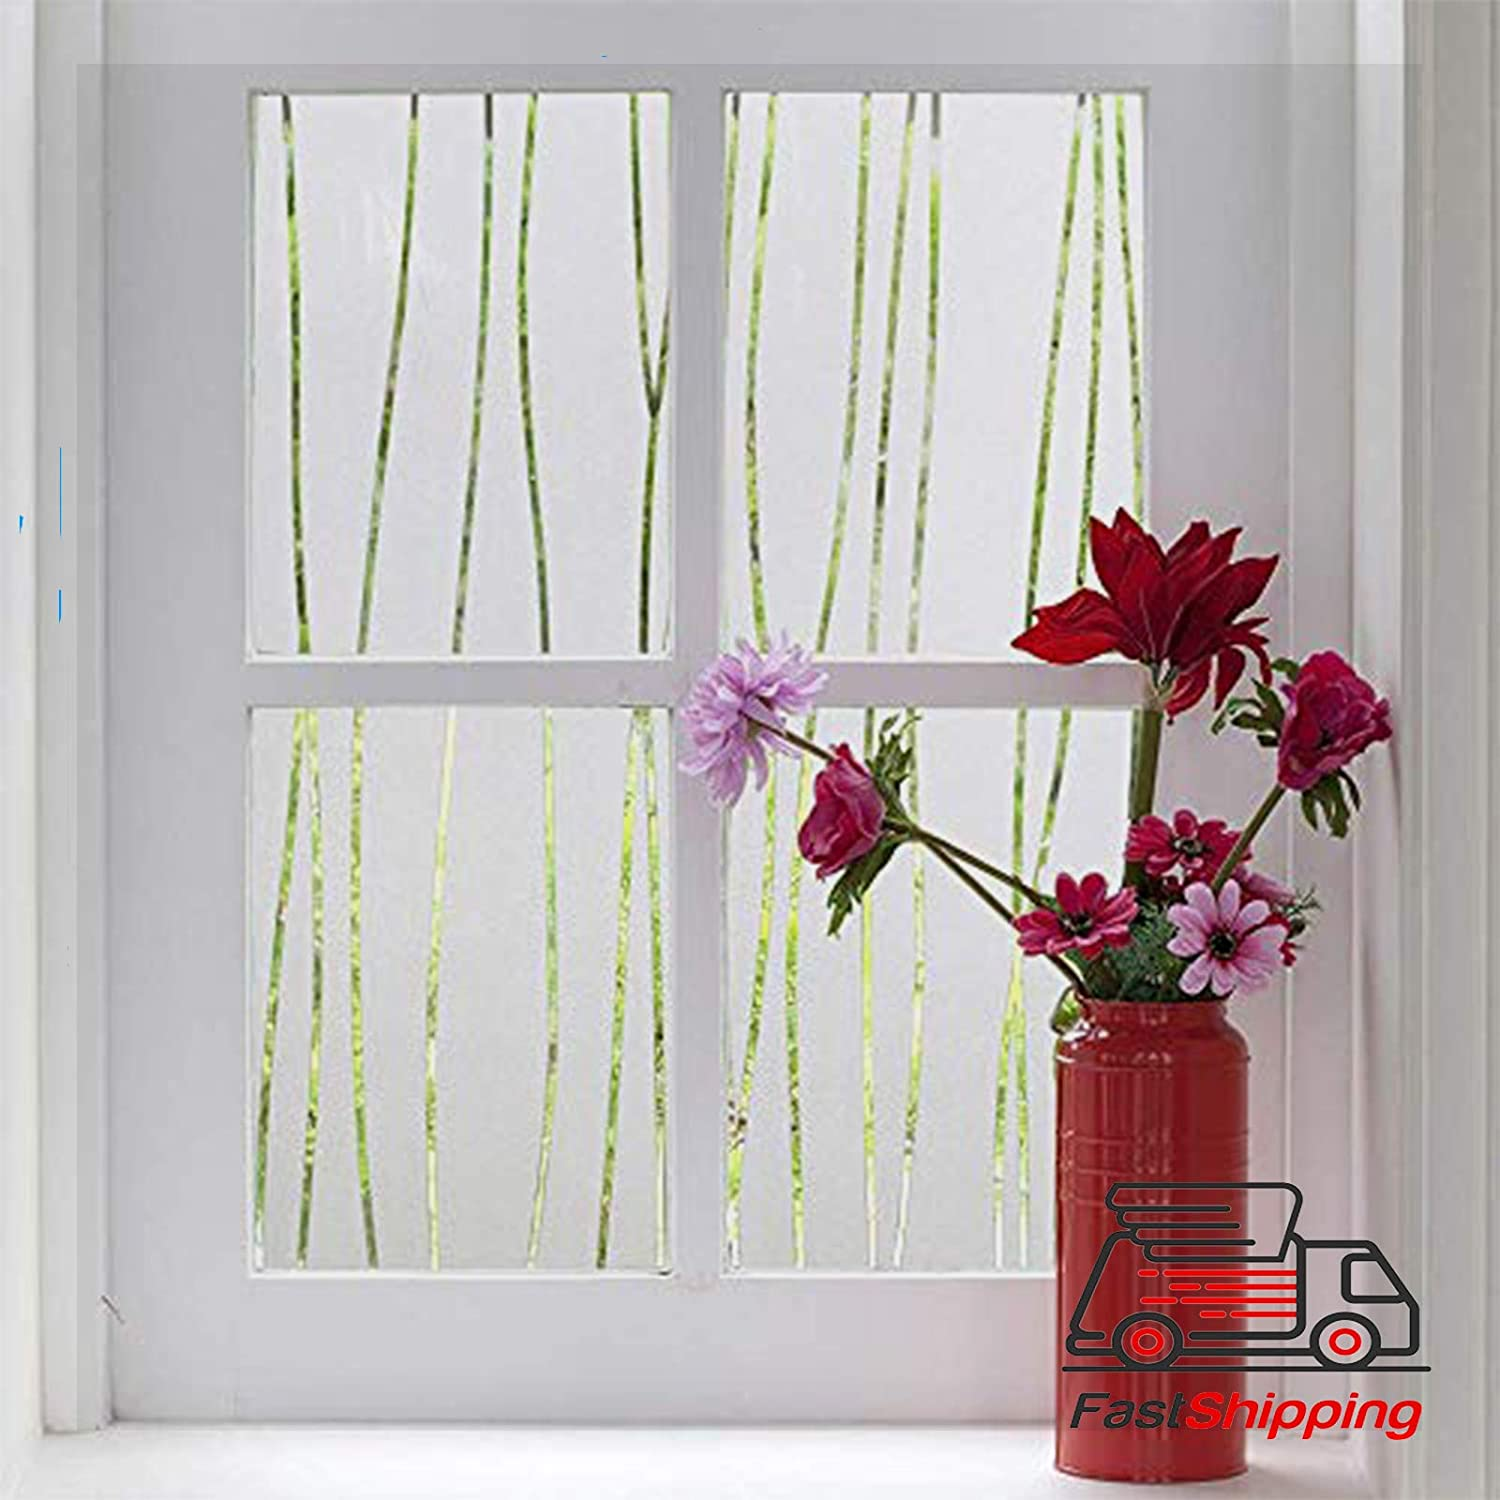 Window Film Frosted-Window Film for Privacy and Light Protection | Vinyl Sticker Film Creates a Frosted Glass Look |Static Cling | Perfect for Home and Office (17.7'' x157.4, Irregular Stripe)